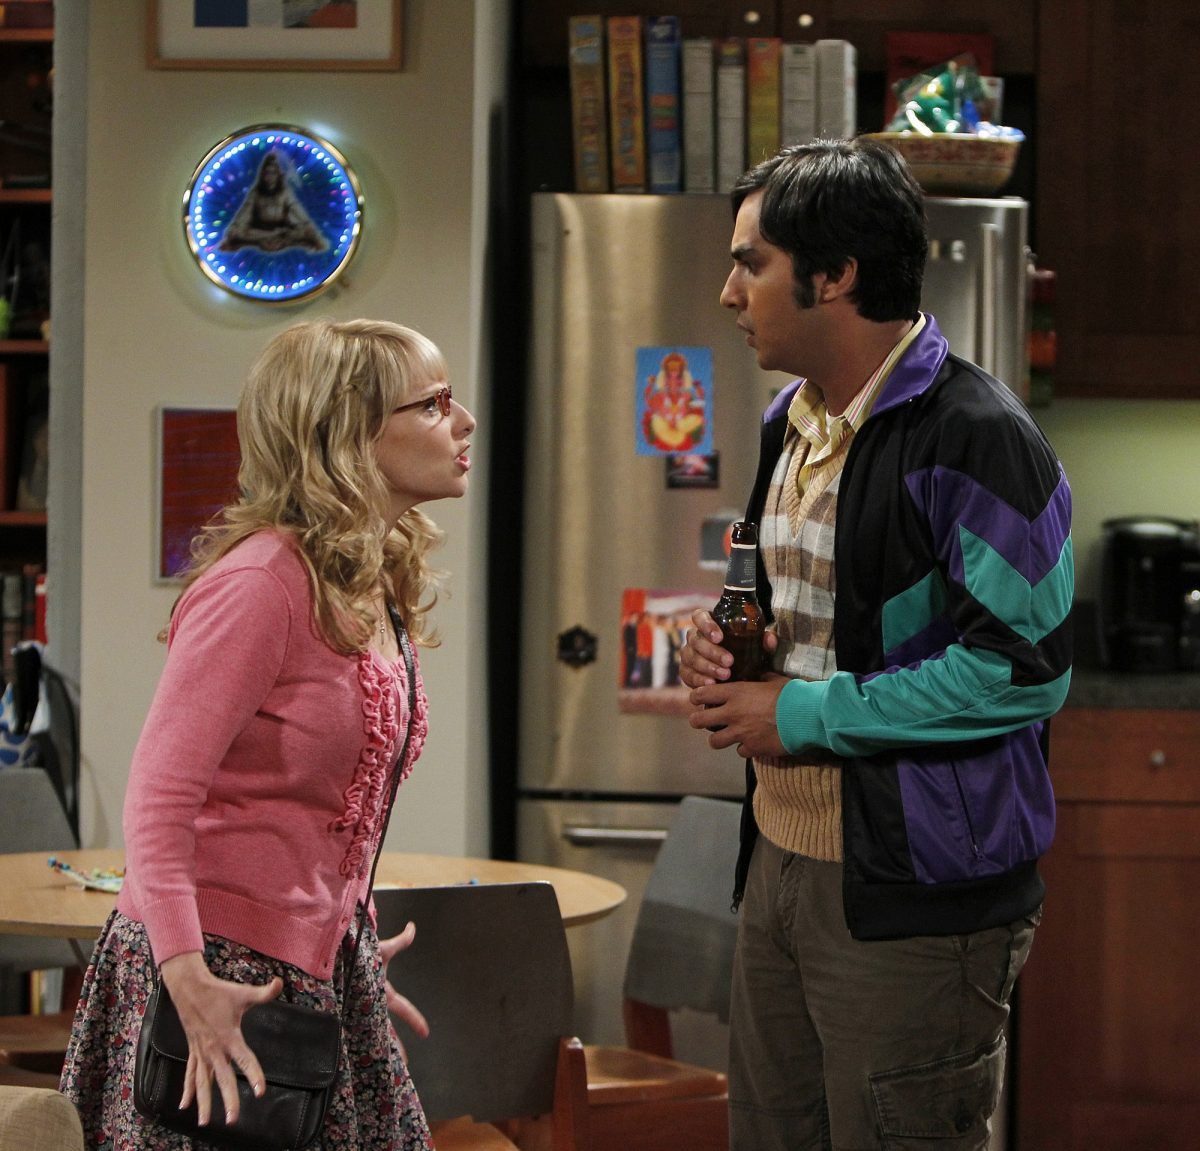 """Bernadette and Raj have a verbal altercation in """"The Skank Reflex Analysis"""", an episode of 'The Big Bang Theory'"""